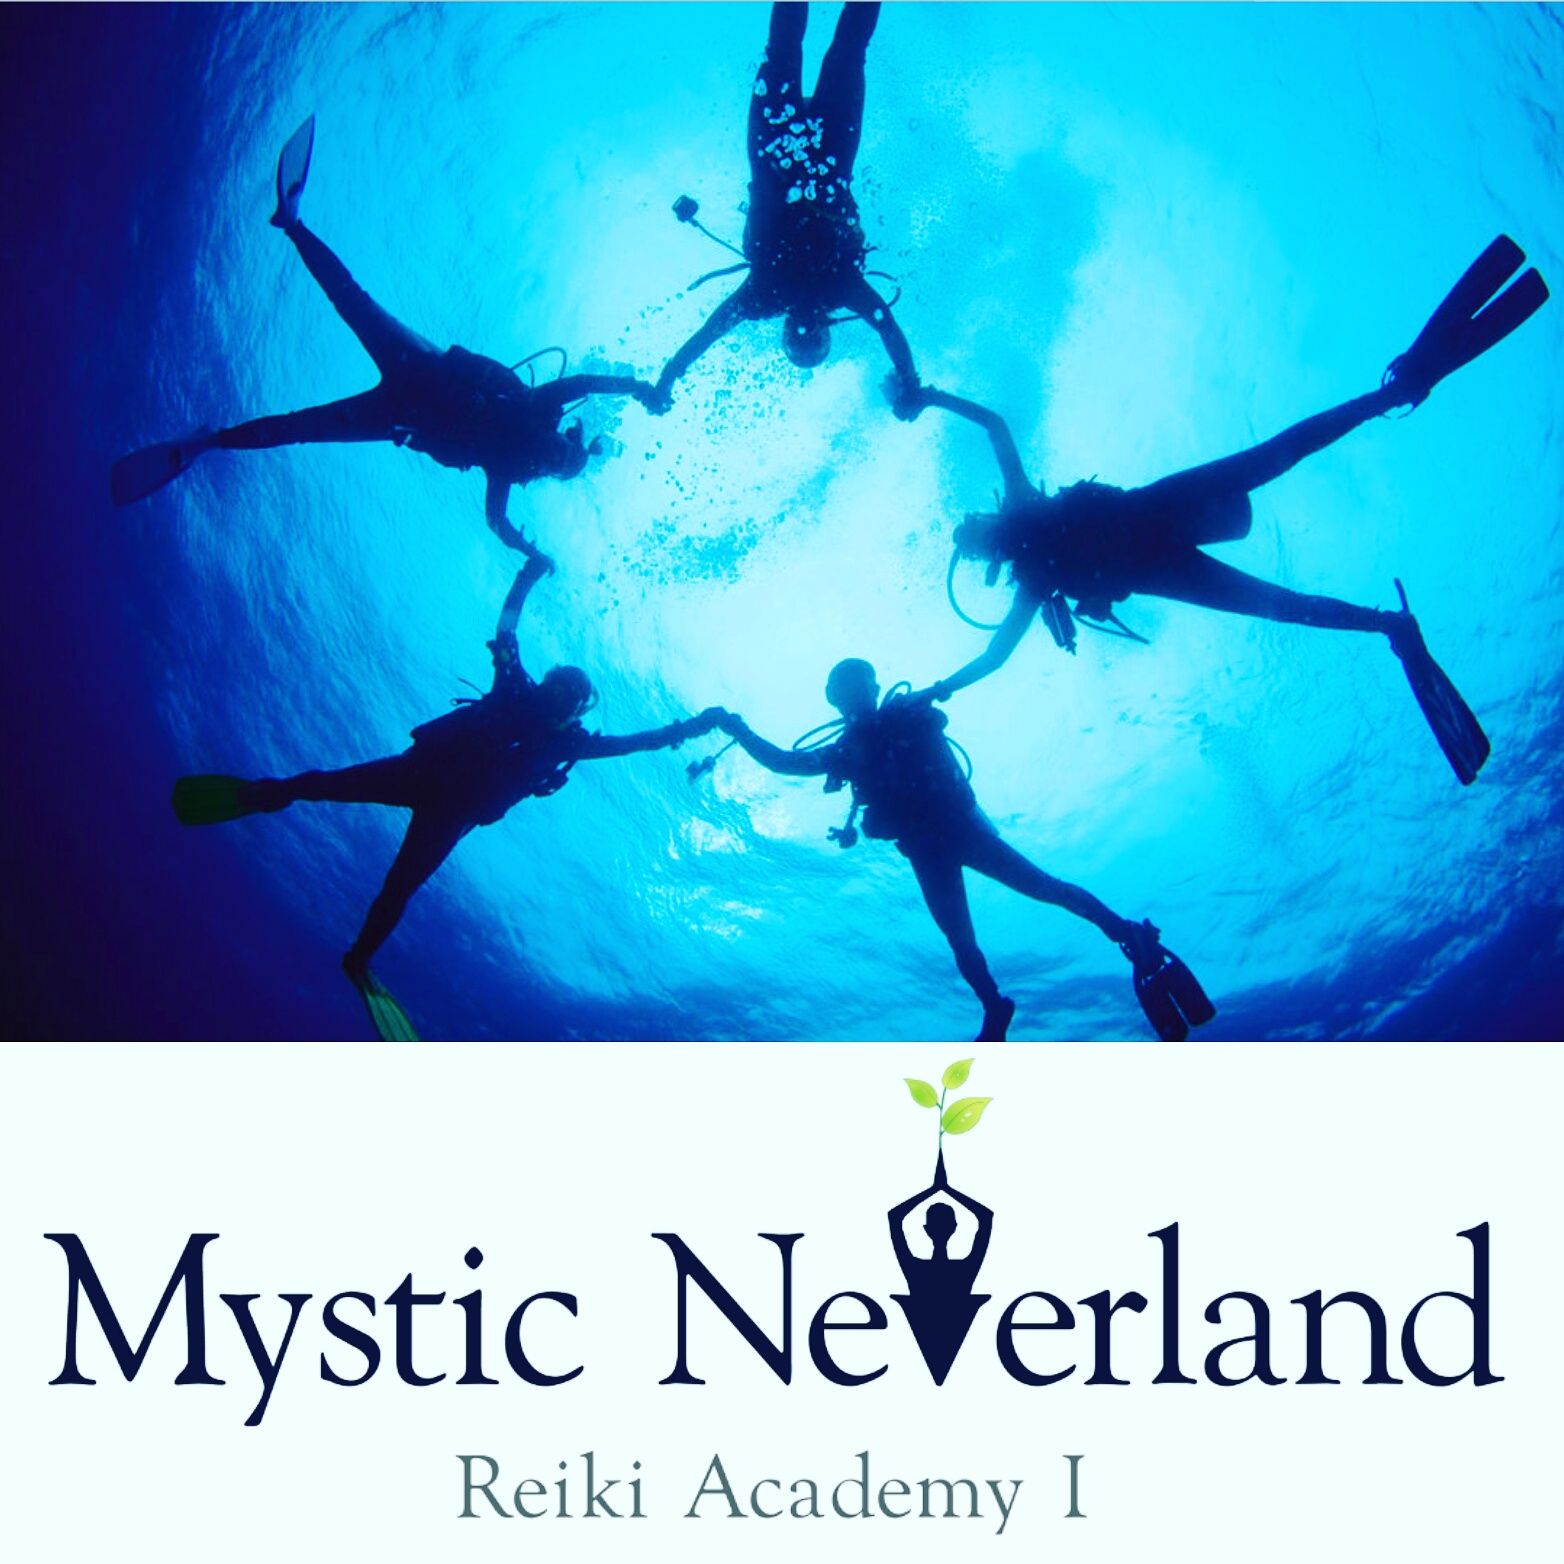 Mystic Neverland Scuba Diving Yoga